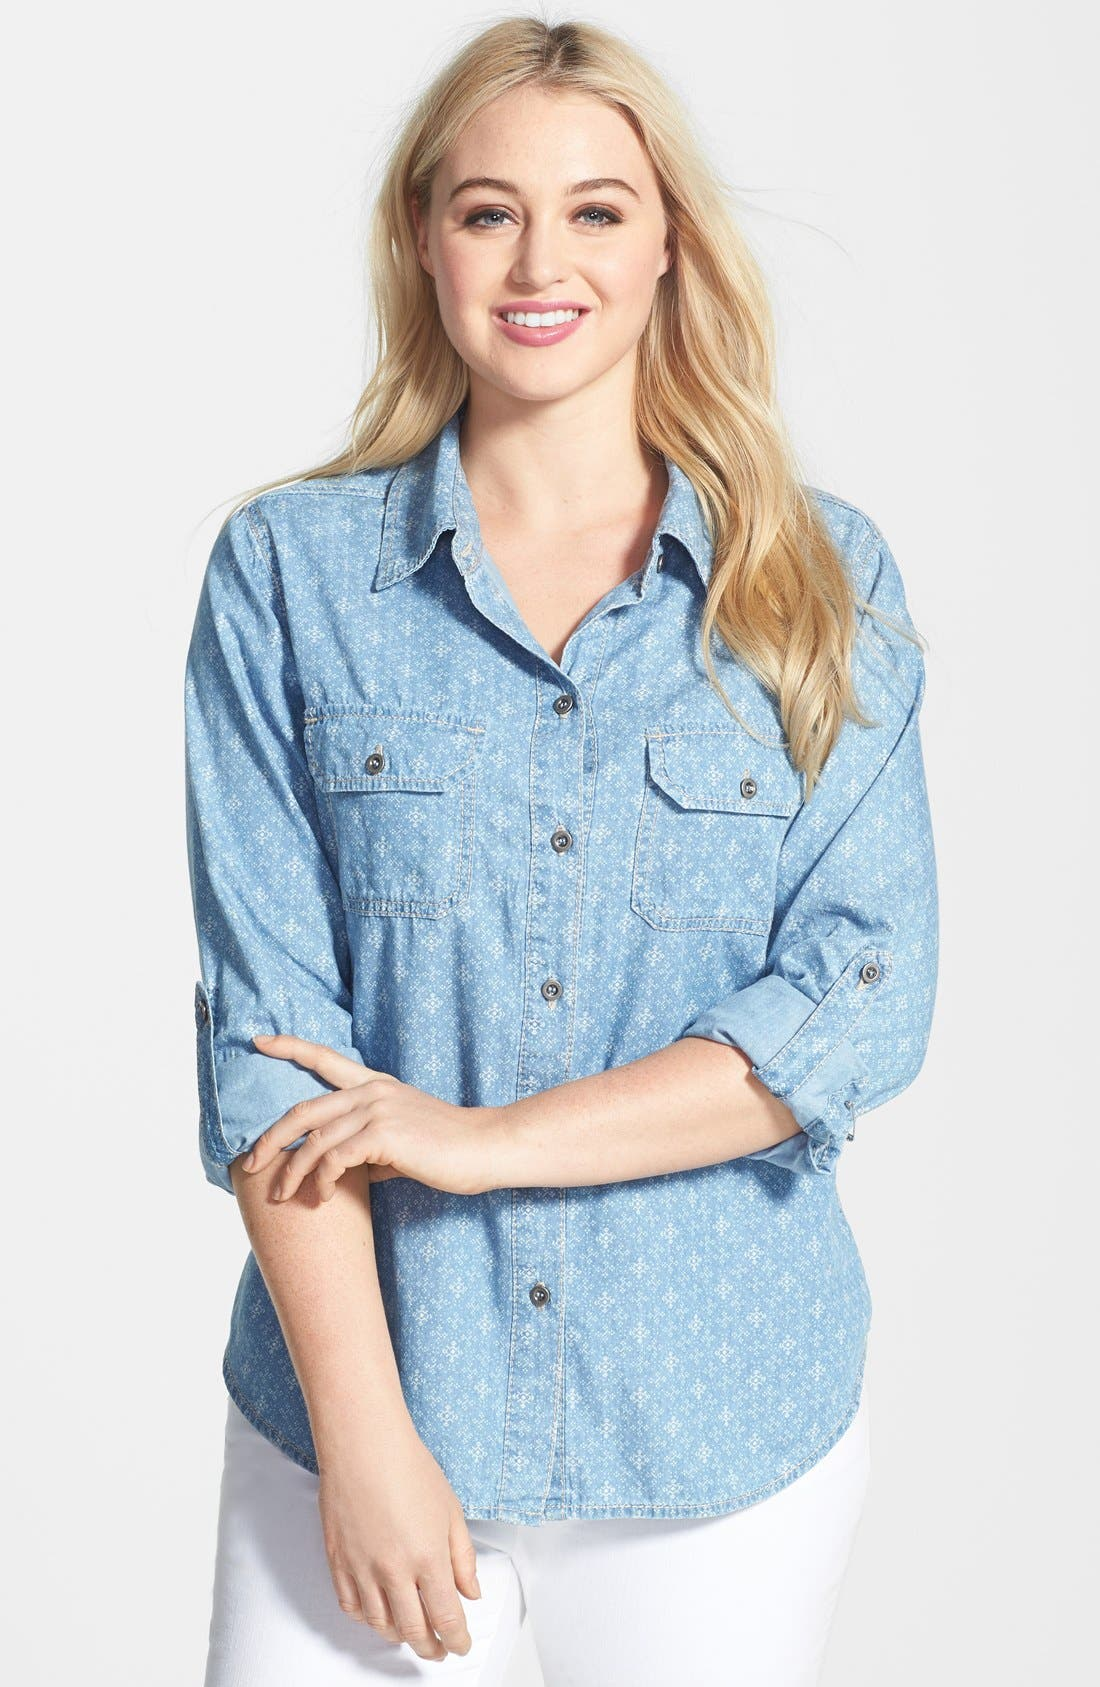 Alternate Image 1 Selected - Seven7 Print Roll Sleeve Denim Shirt (Plus Size)